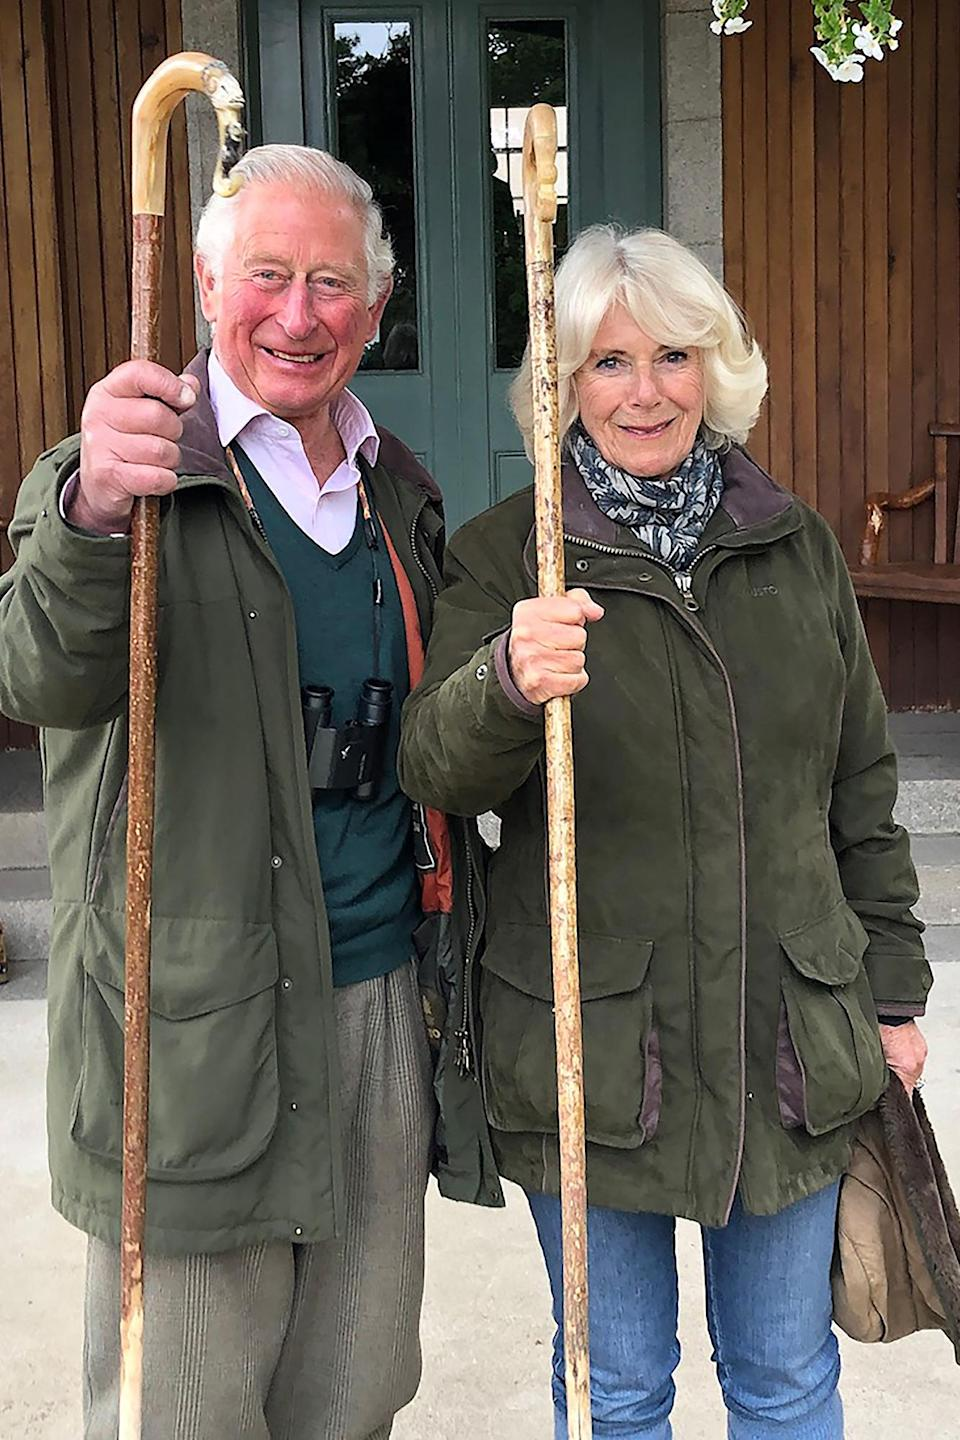 <p>Prince Charles and Camilla, Duchess of Cornwall were all smiles in Birkhall, Scotland.</p>